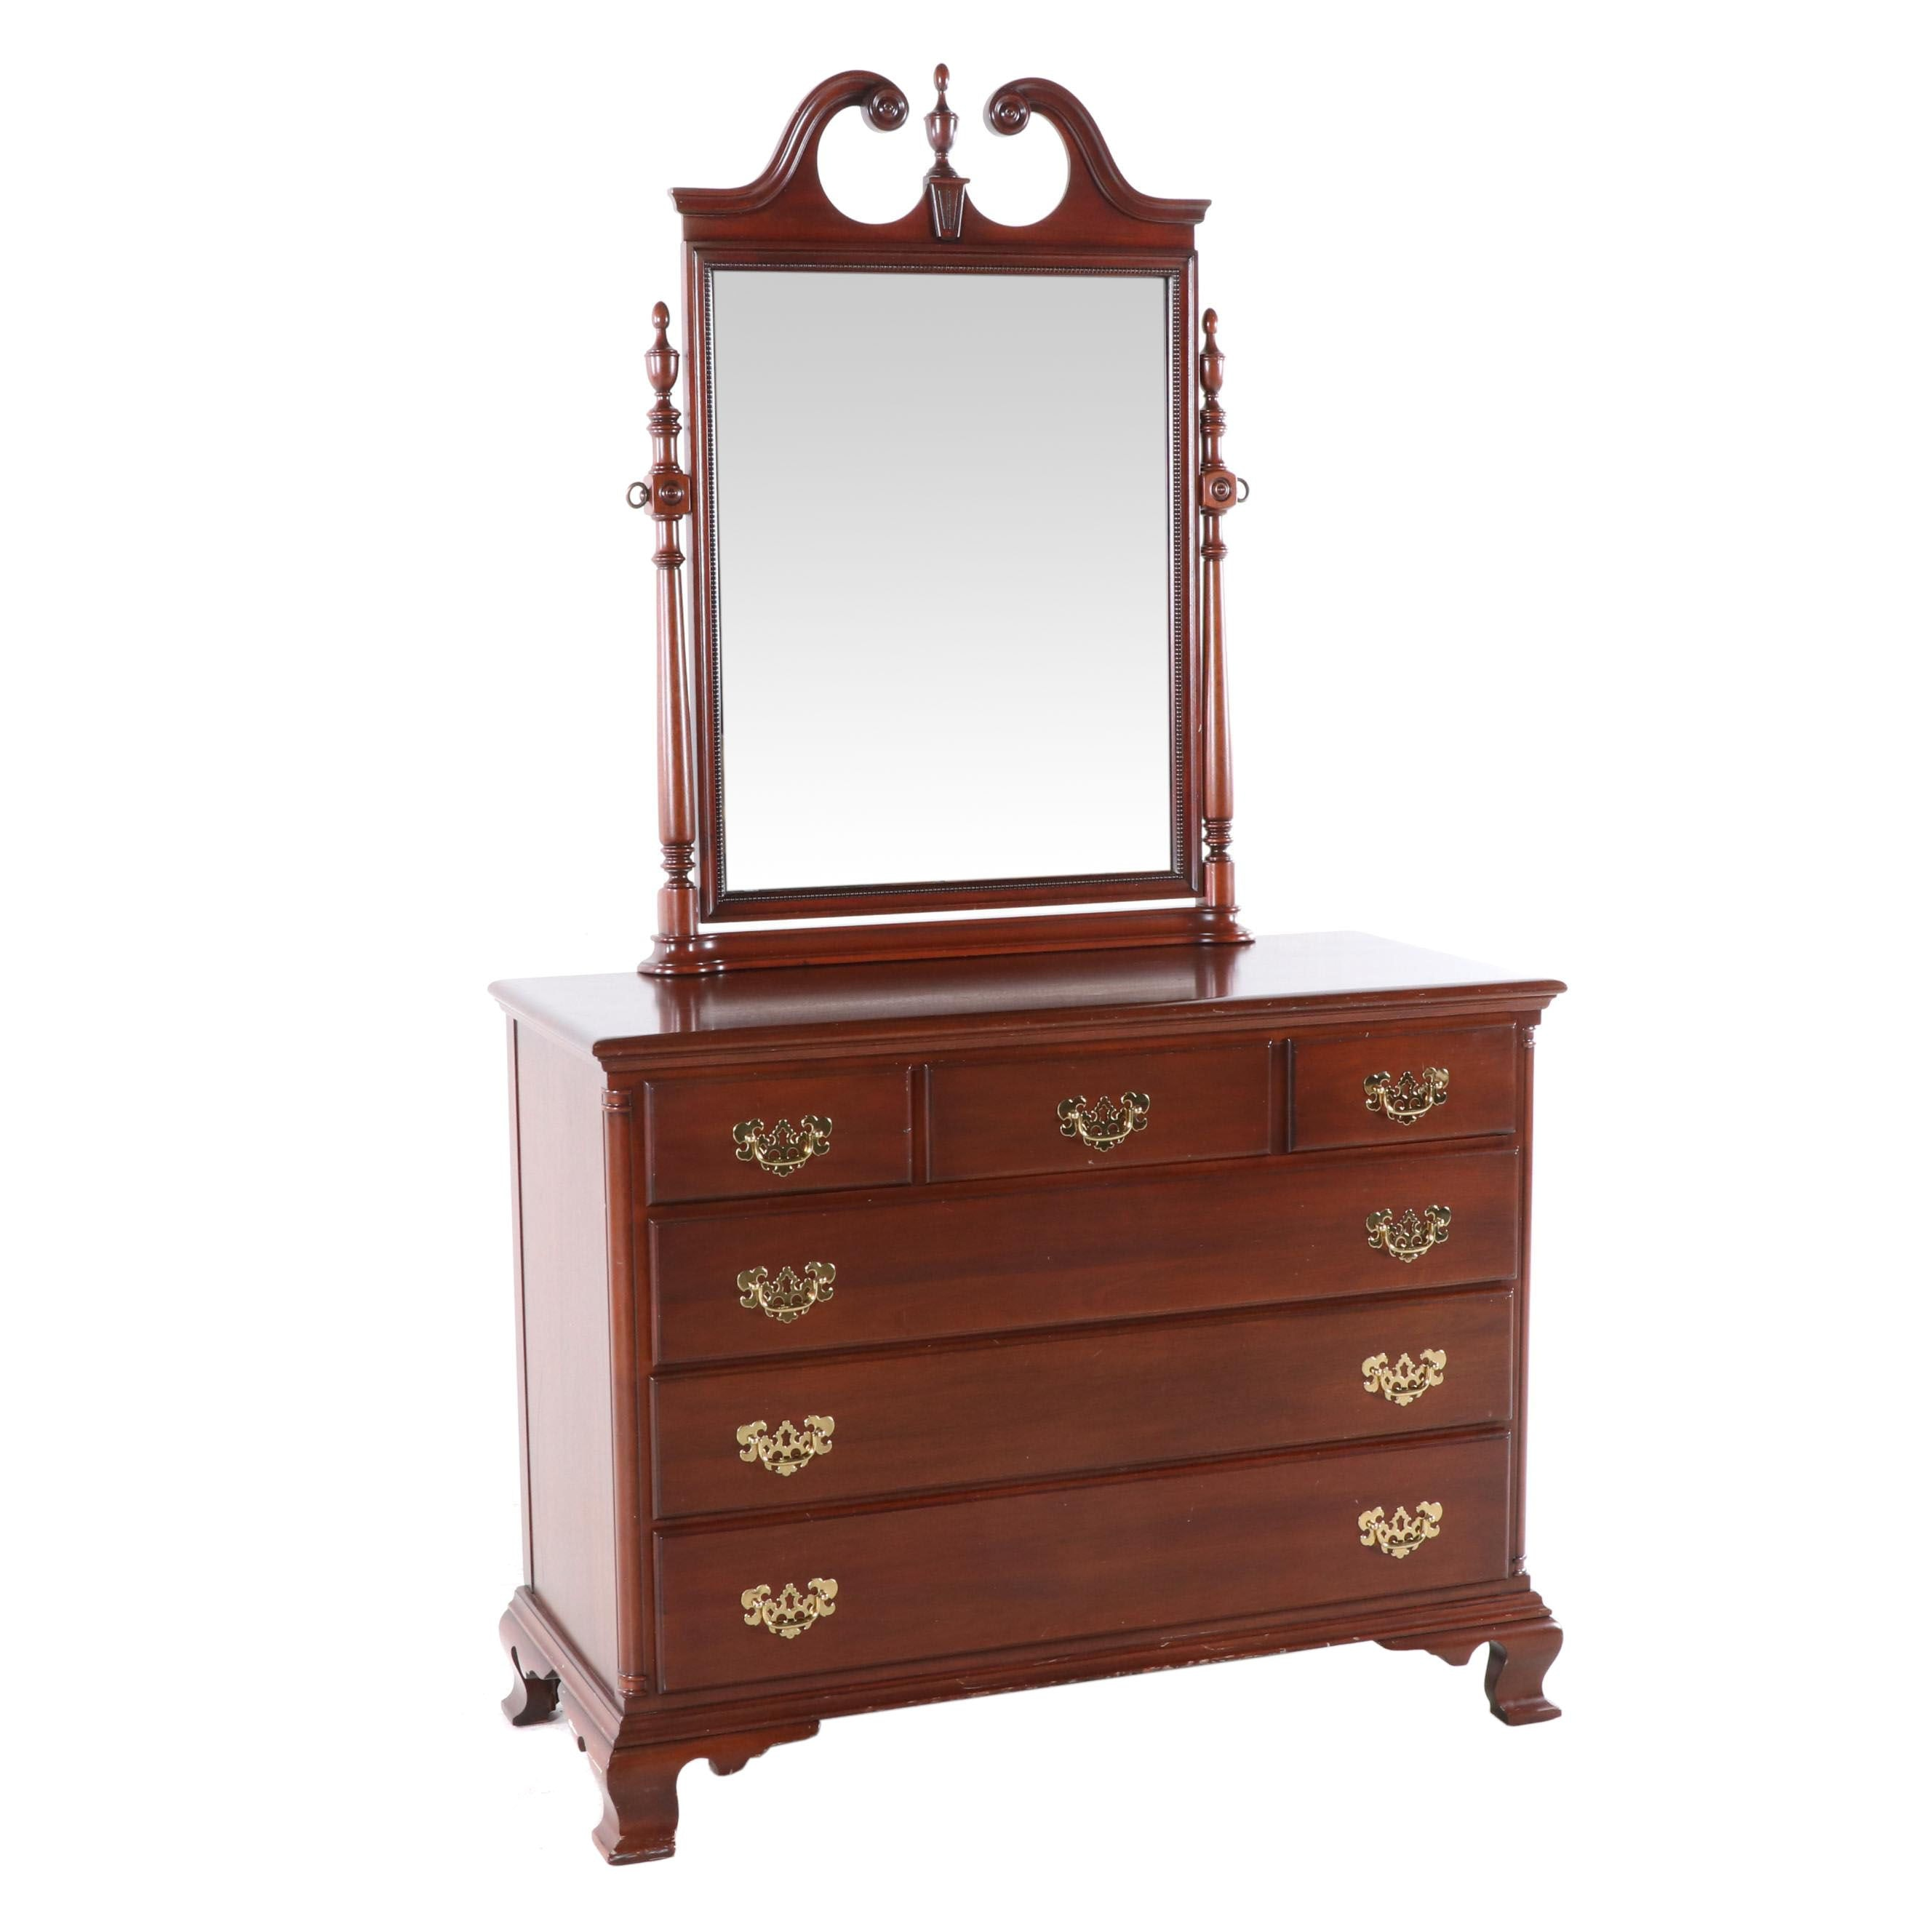 The Continental Furniture Co. Federal Mahogany Chest of Drawers With Mirror